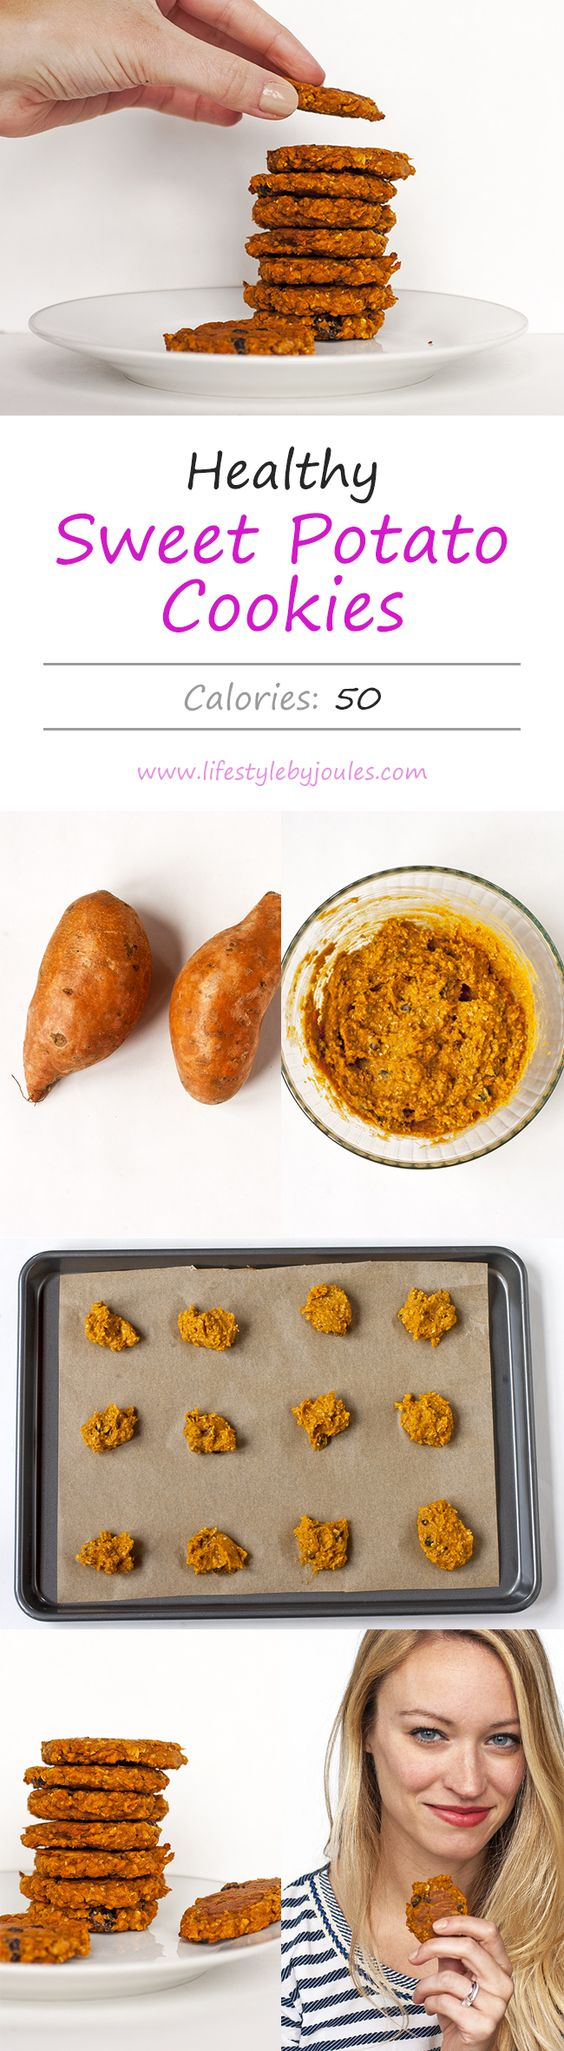 Sweet Potato Cookie Recipe - These super simple cookies are sweet, tasty, and full of fibre and healthy vitamins. I've been eating them for breakfast!